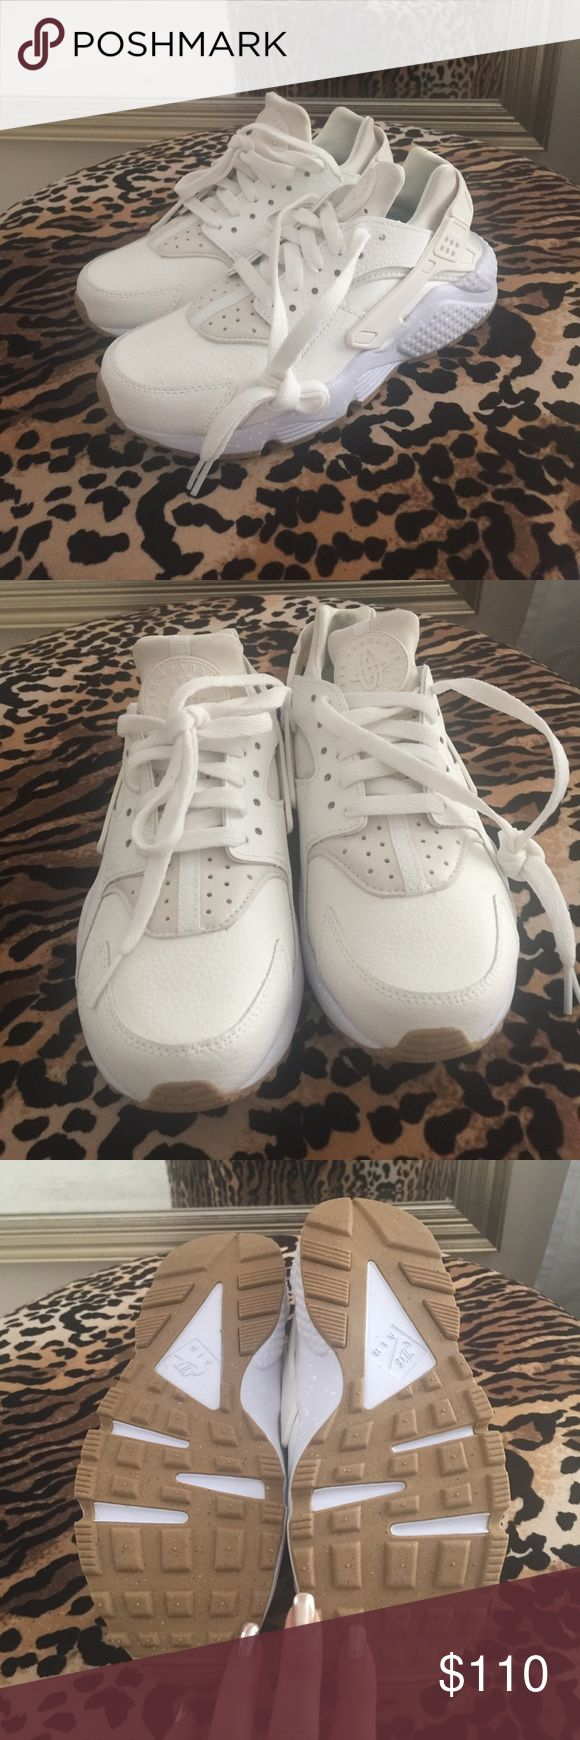 Brand New Nike Huaraches -off white leather. Never worn, Nike Ids Nike Shoes Sneakers